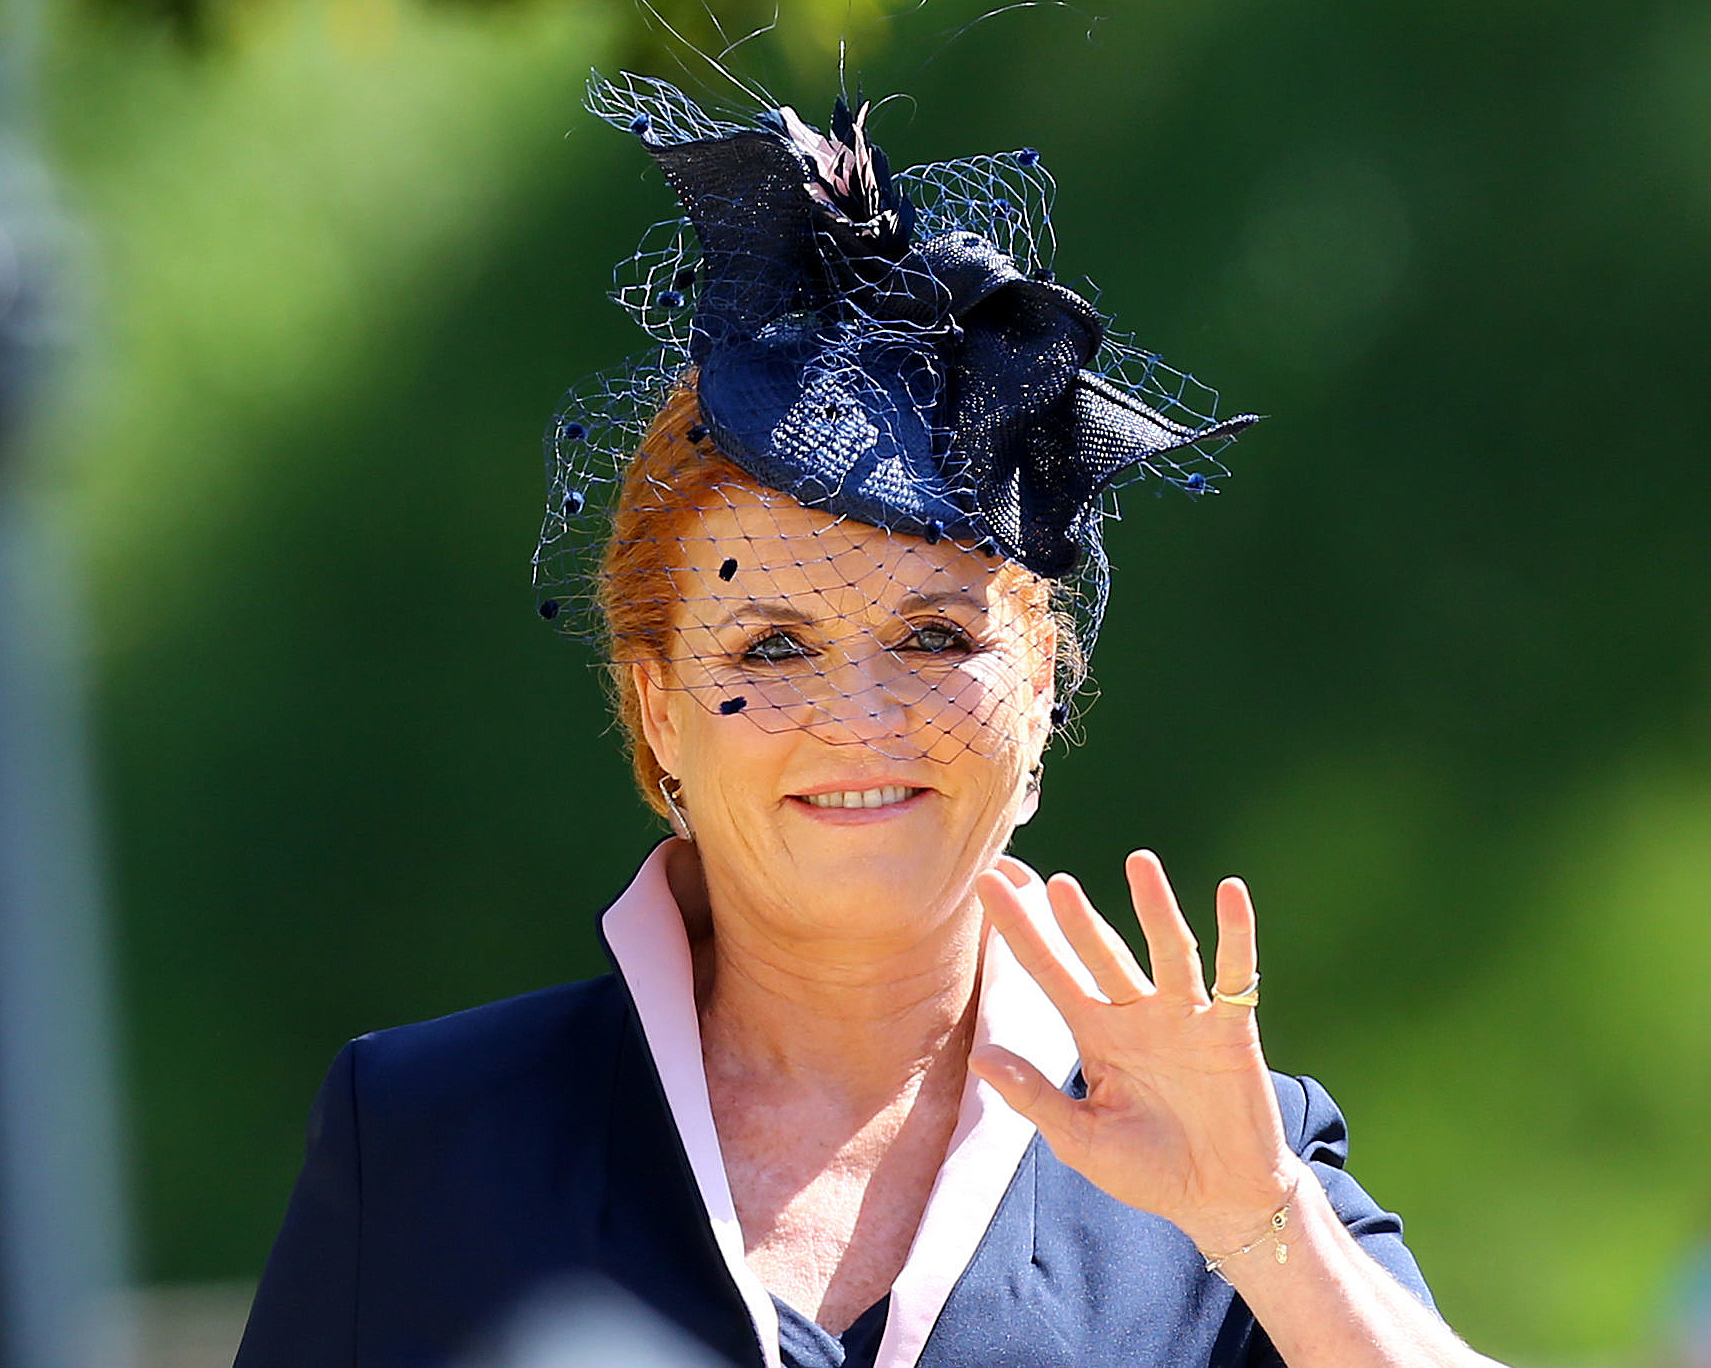 Sarah Duchess of York at the wedding of Prince Harry and Meghan Markle in May 2018